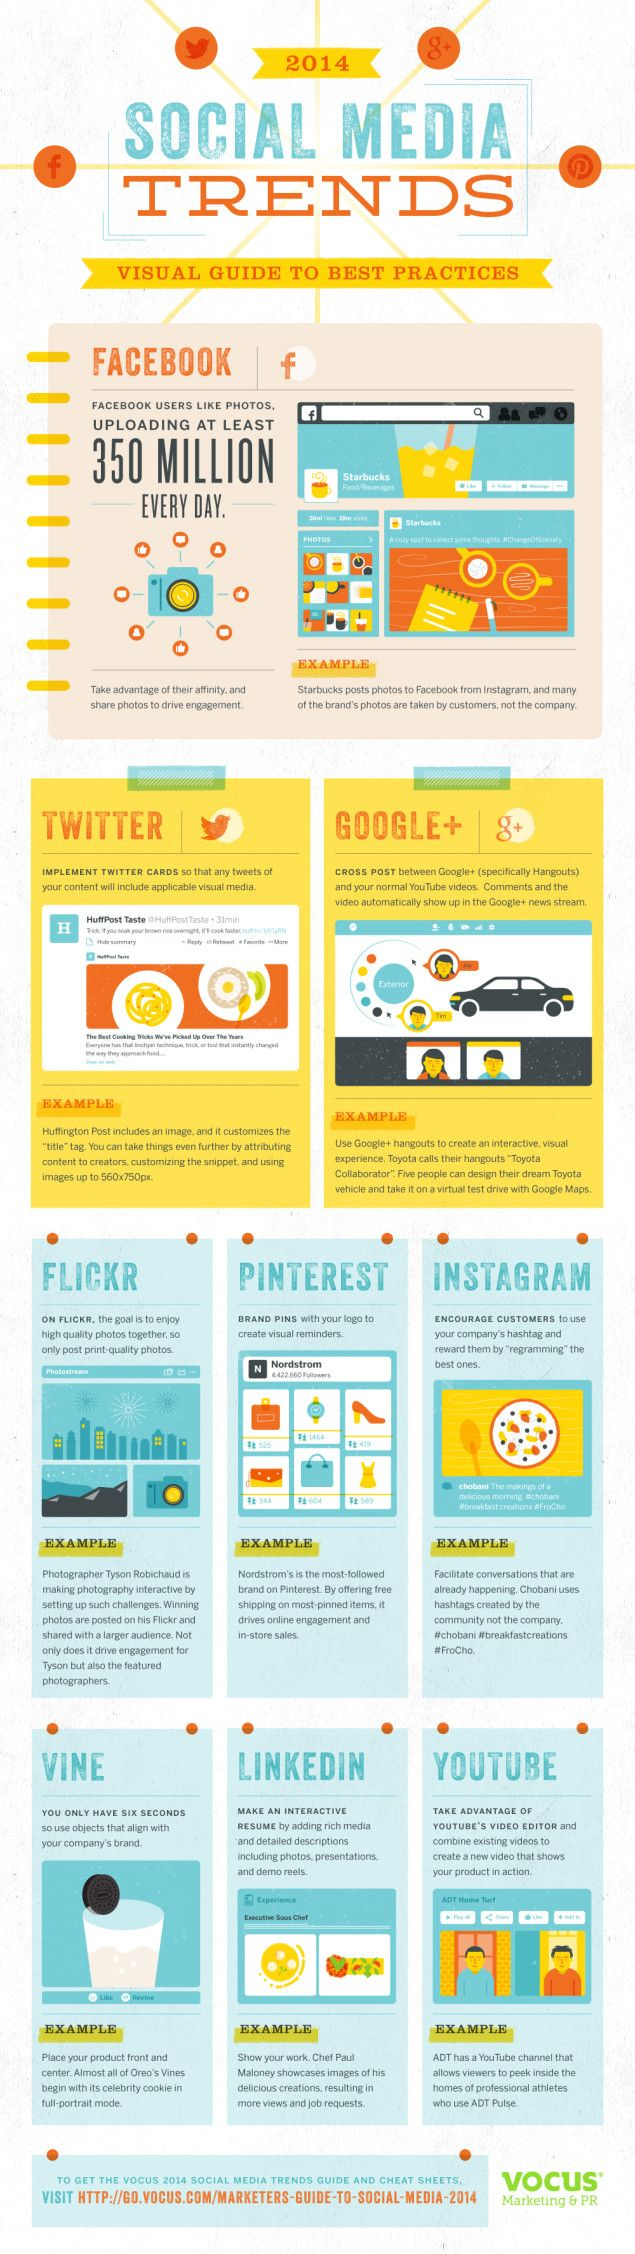 2014 Social Media Trends Visual Guide to Best Practices